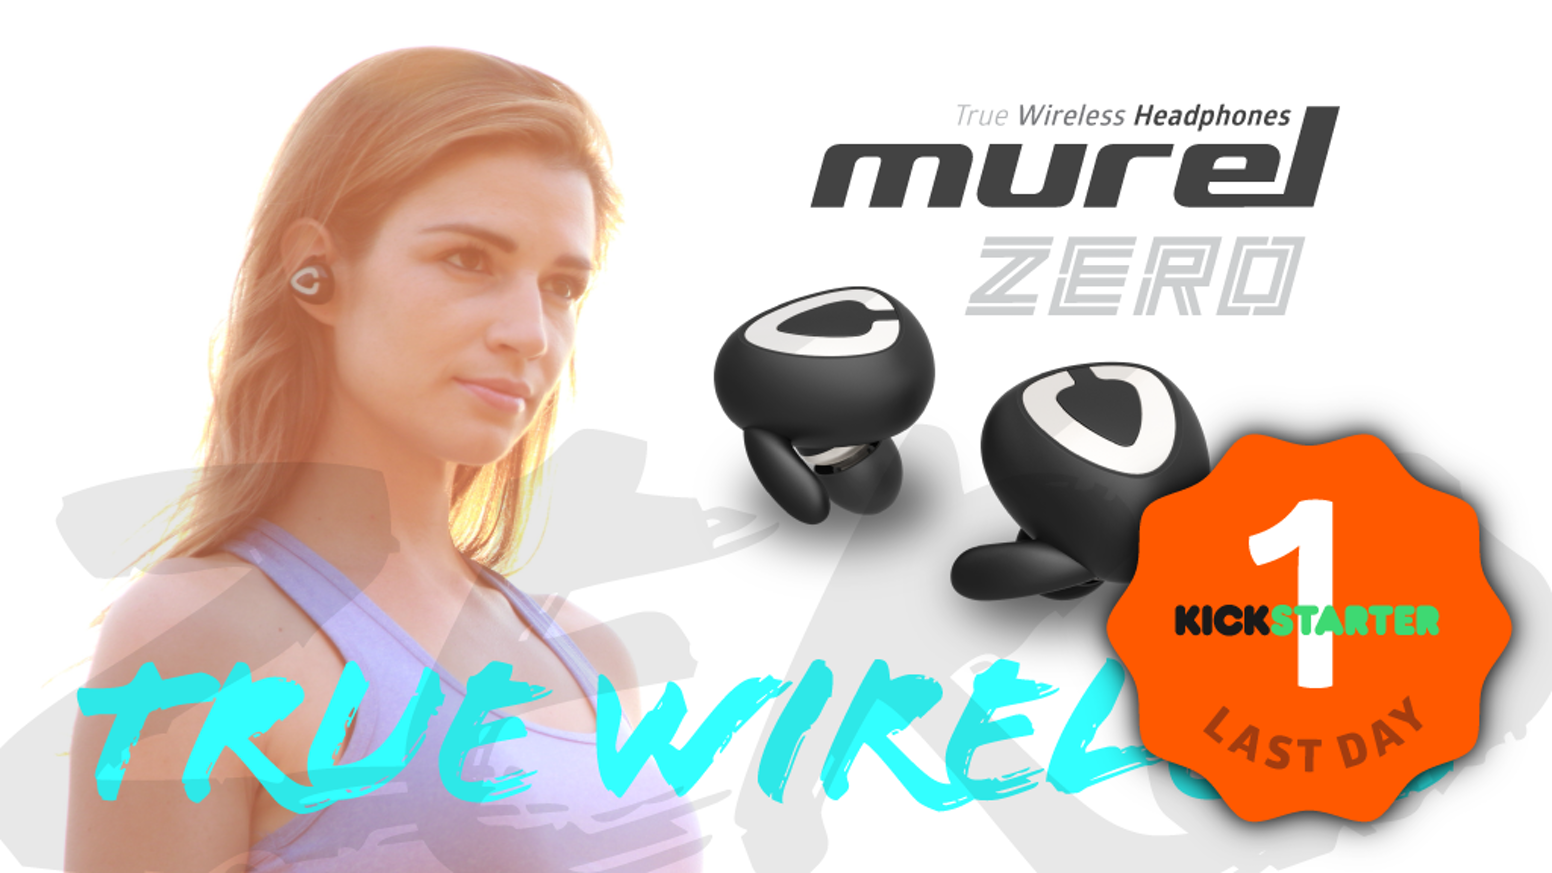 World's Best Sounding True Wireless Headphones with zero connectivity disruption. Designed by sound engineers for incredible audio.